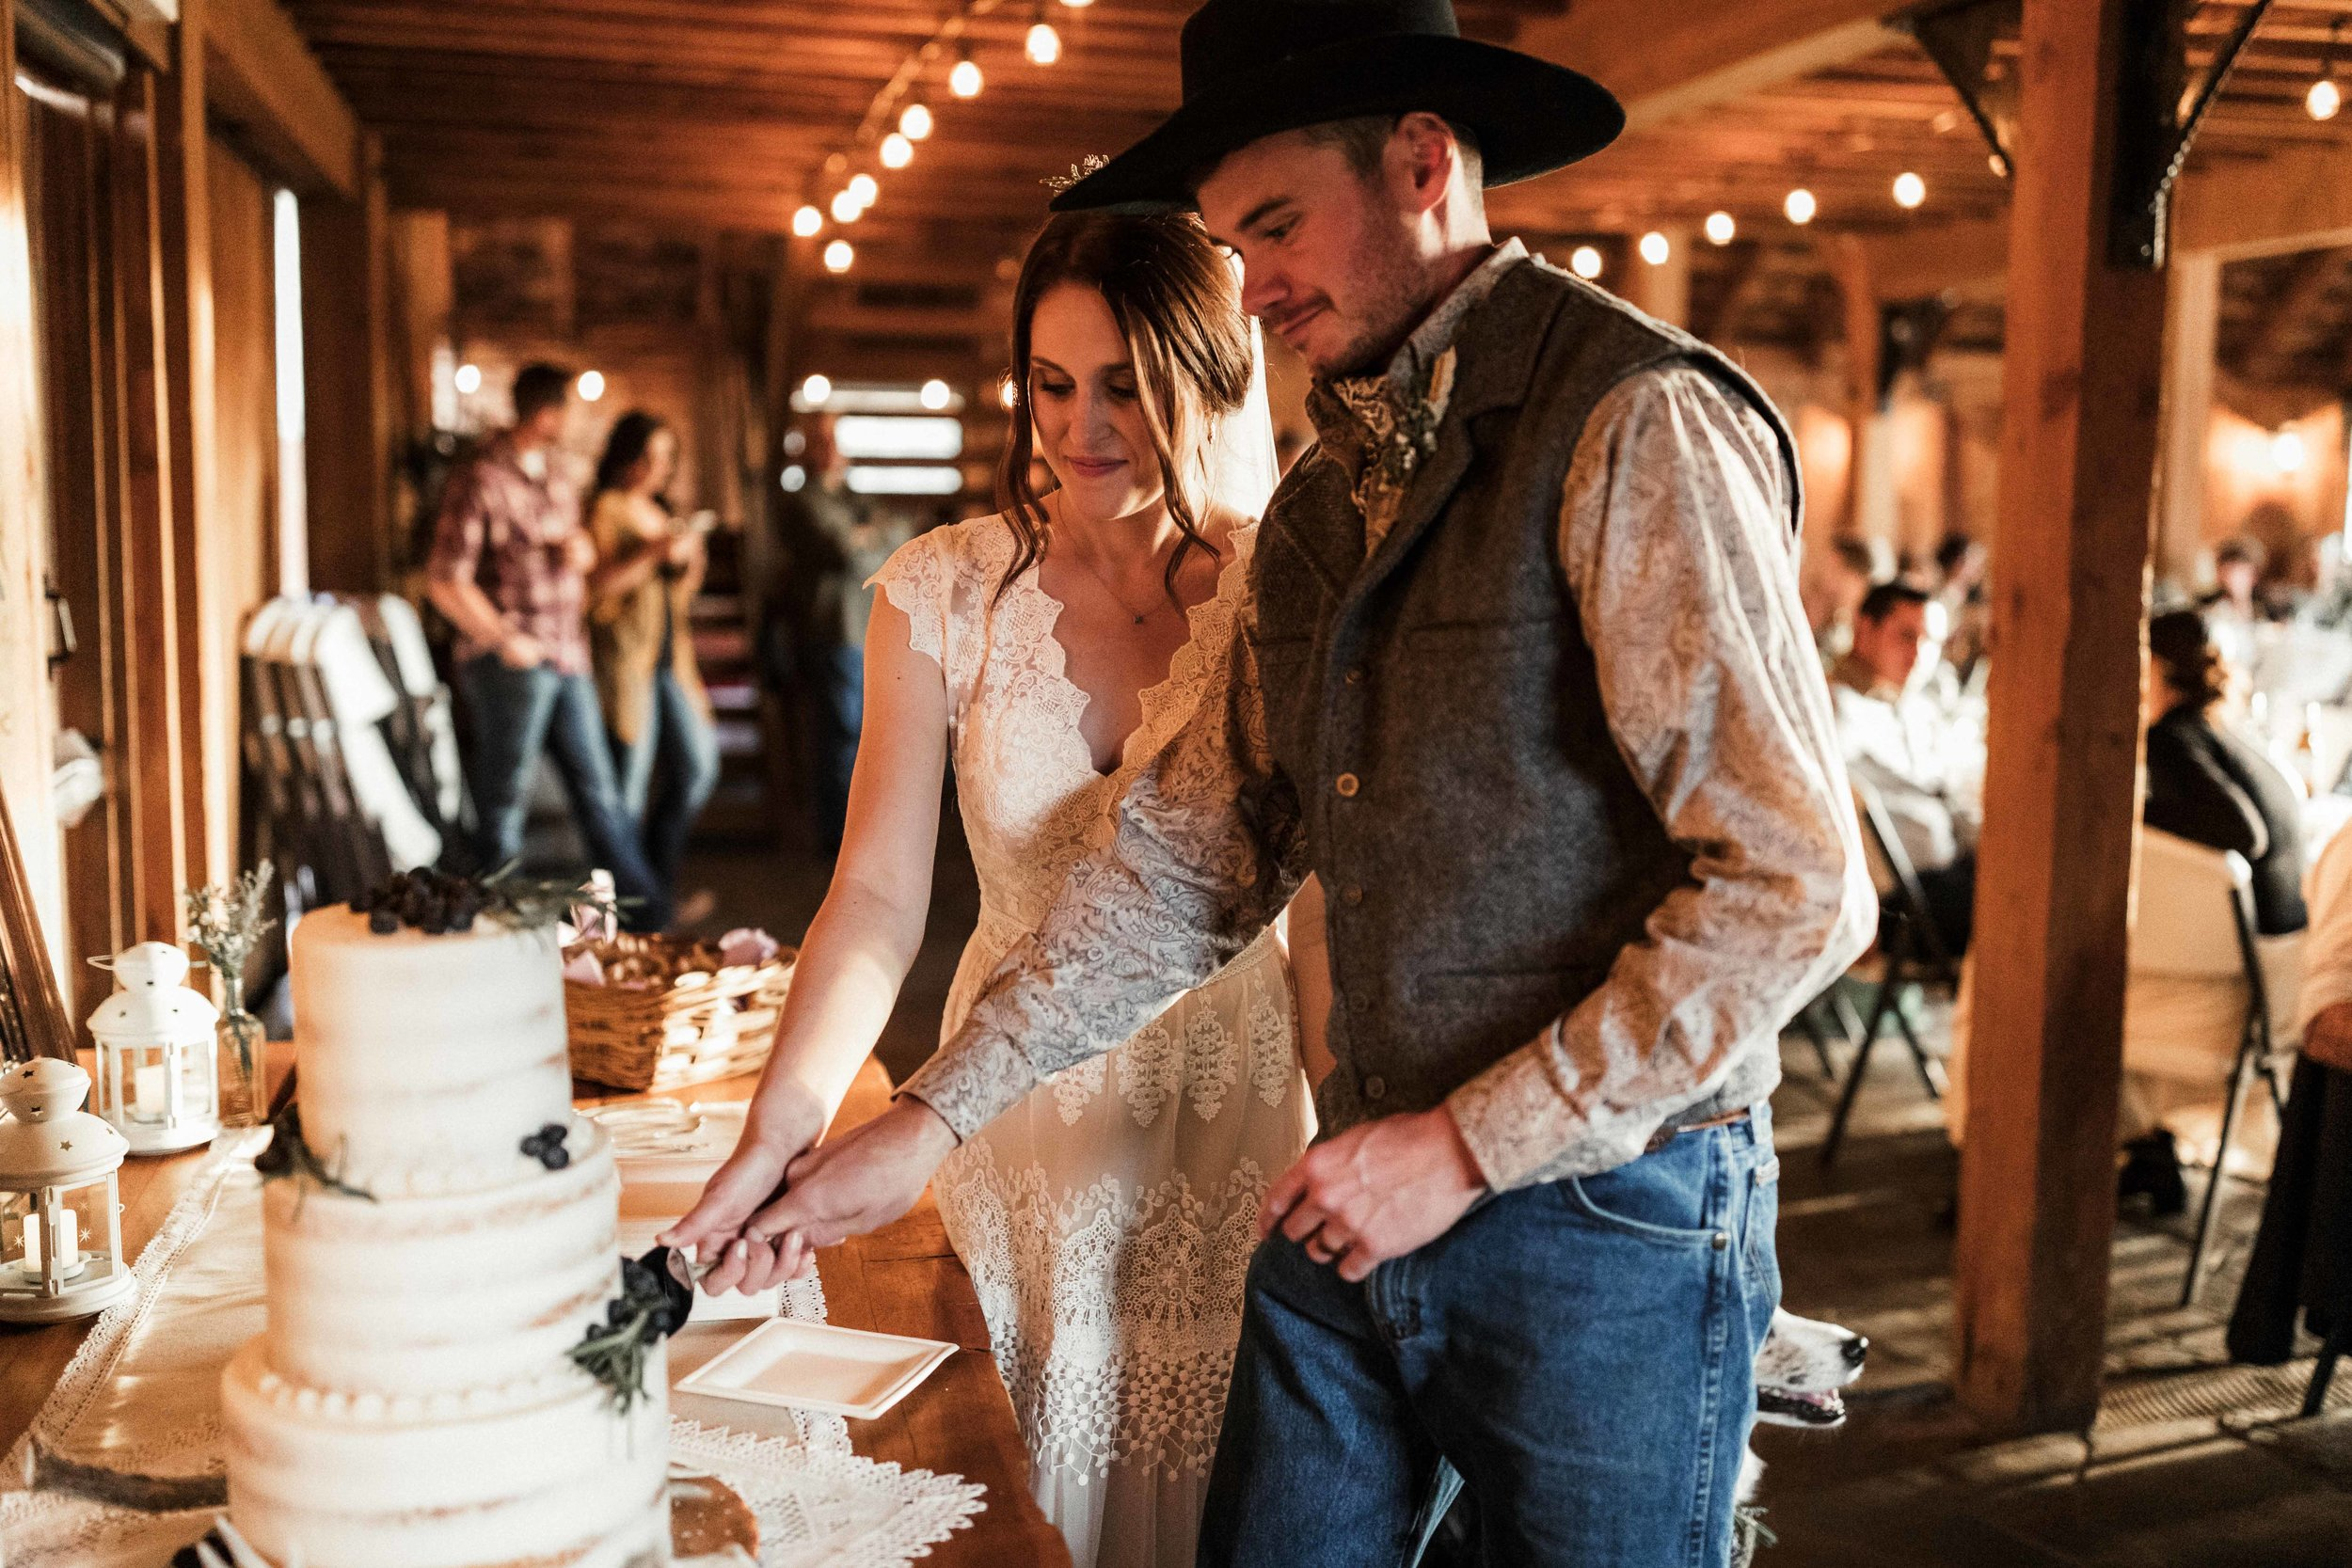 the-cattle-barn-wedding-80.jpg